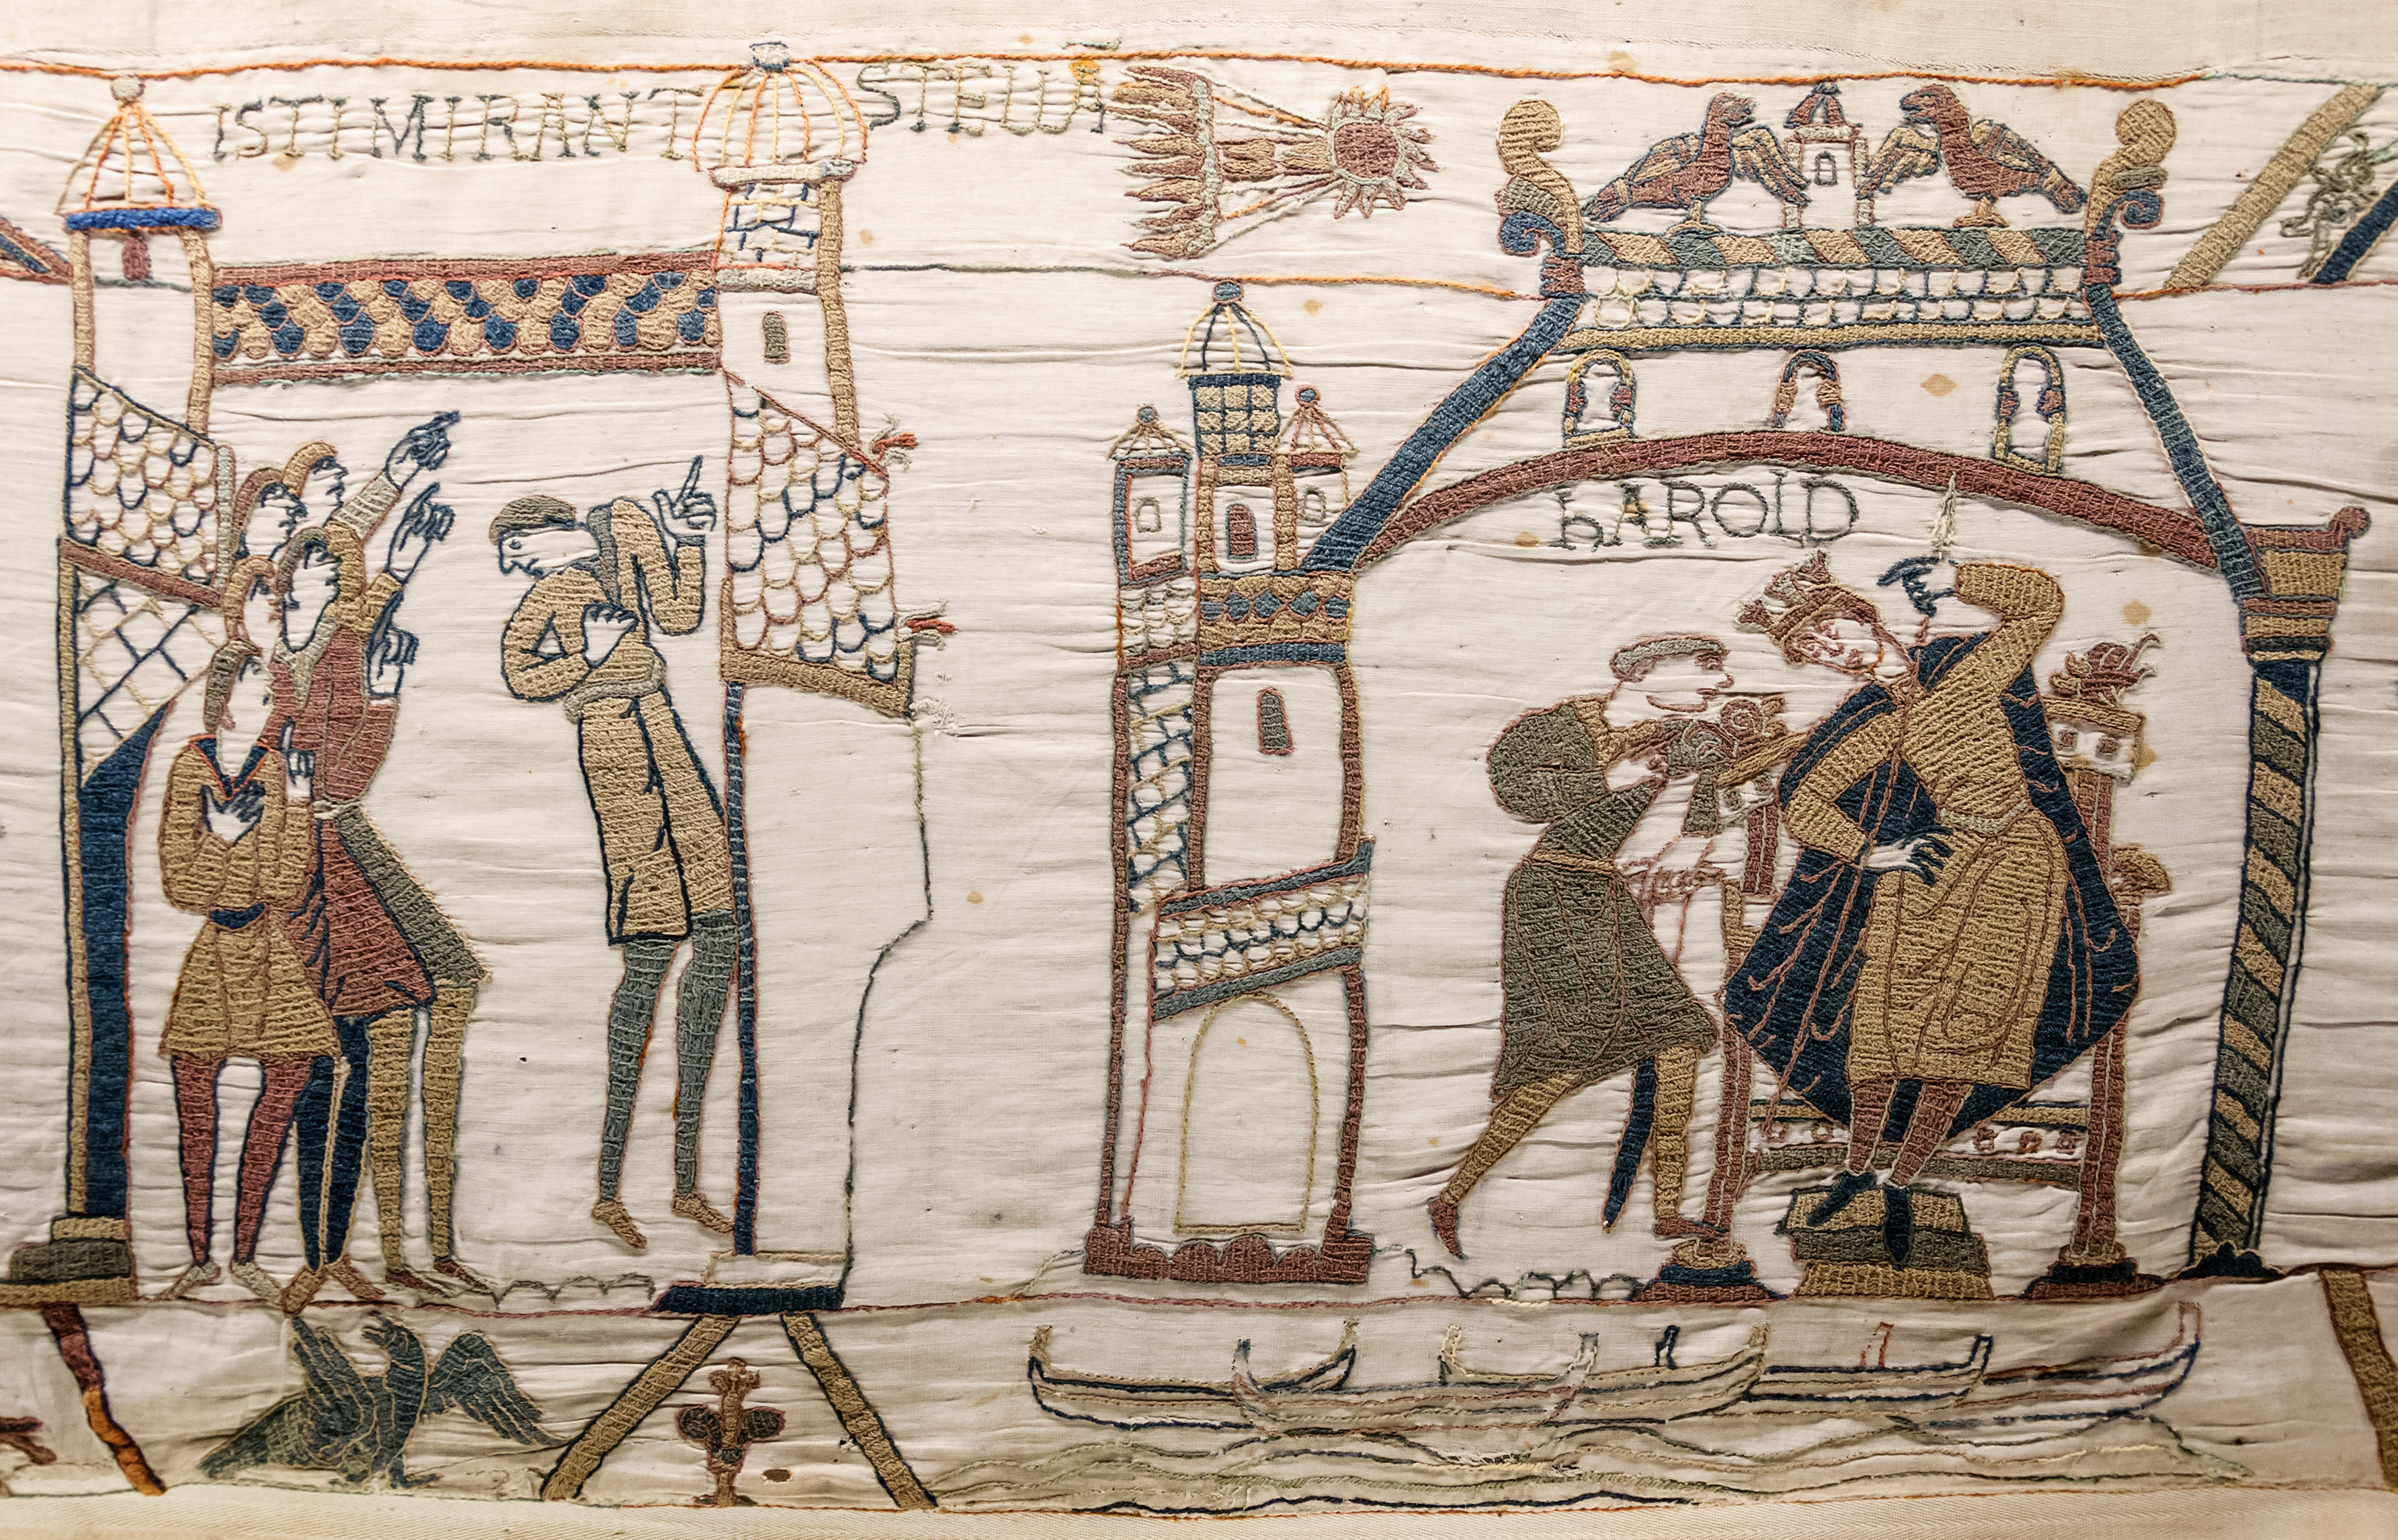 Bayeux_Tapestry_32-33_comet_Halley_Harold